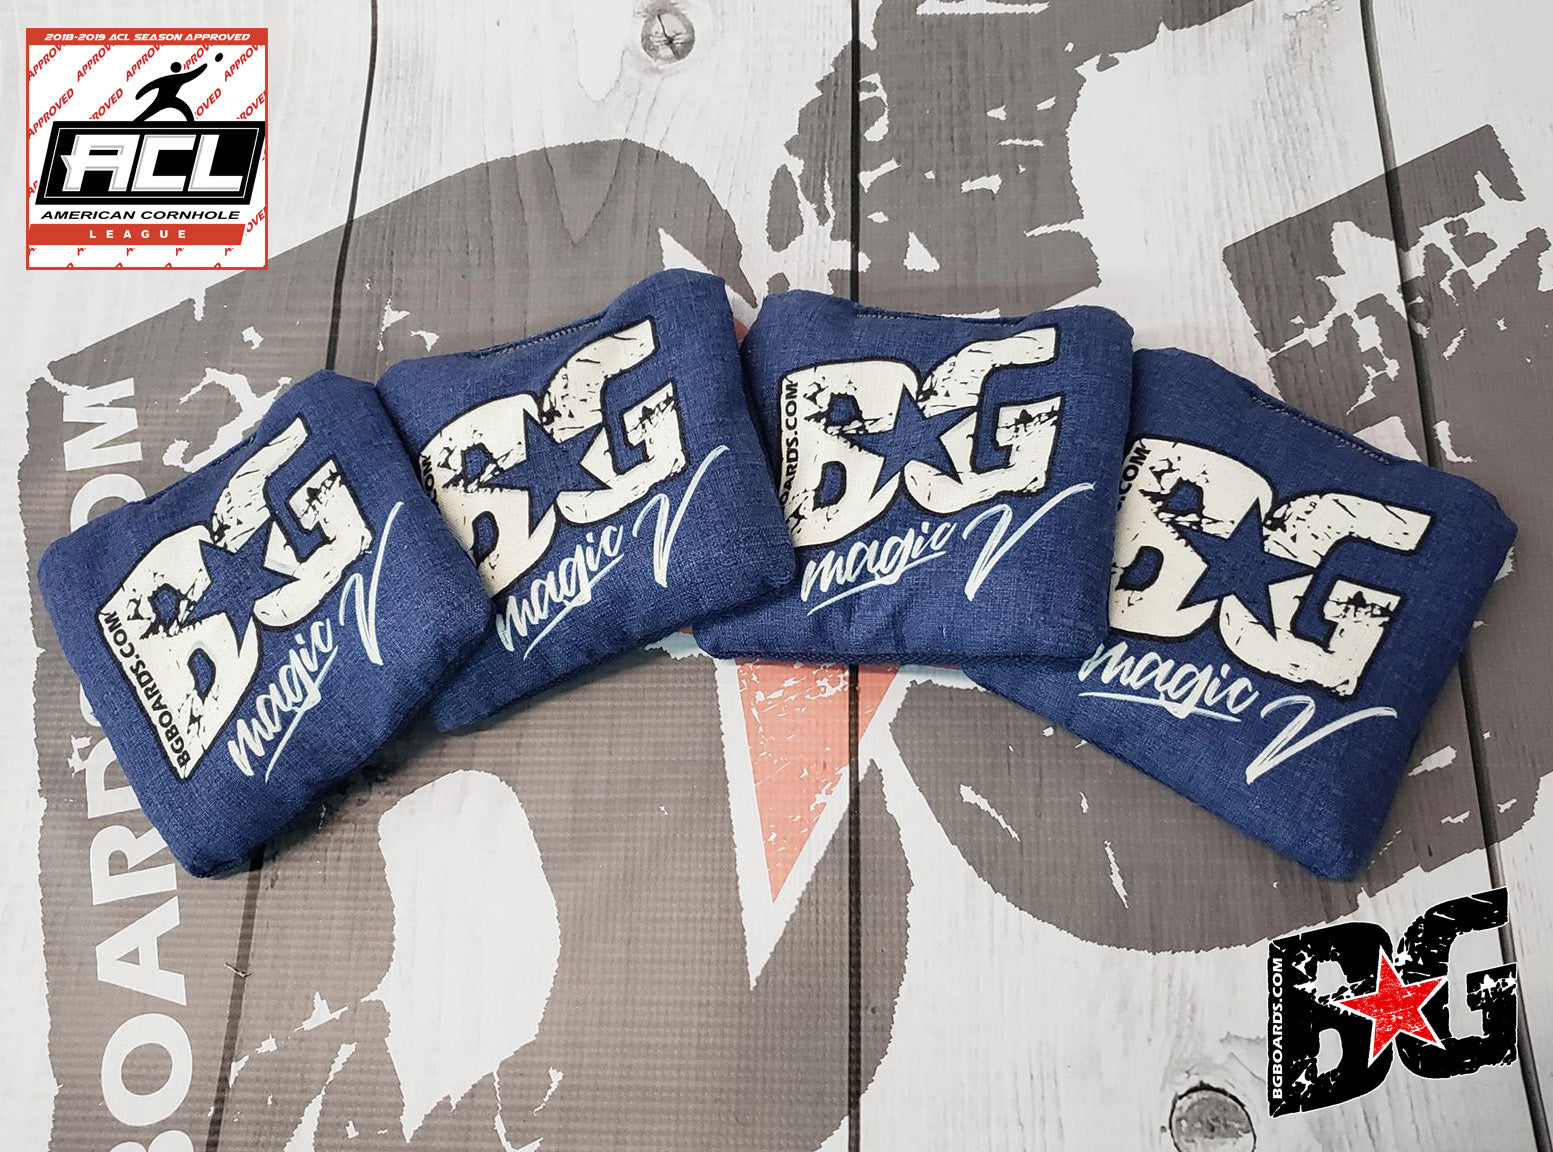 BG Magic V Tournament Cornhole Bags - HALF SET OF 4 BAGS